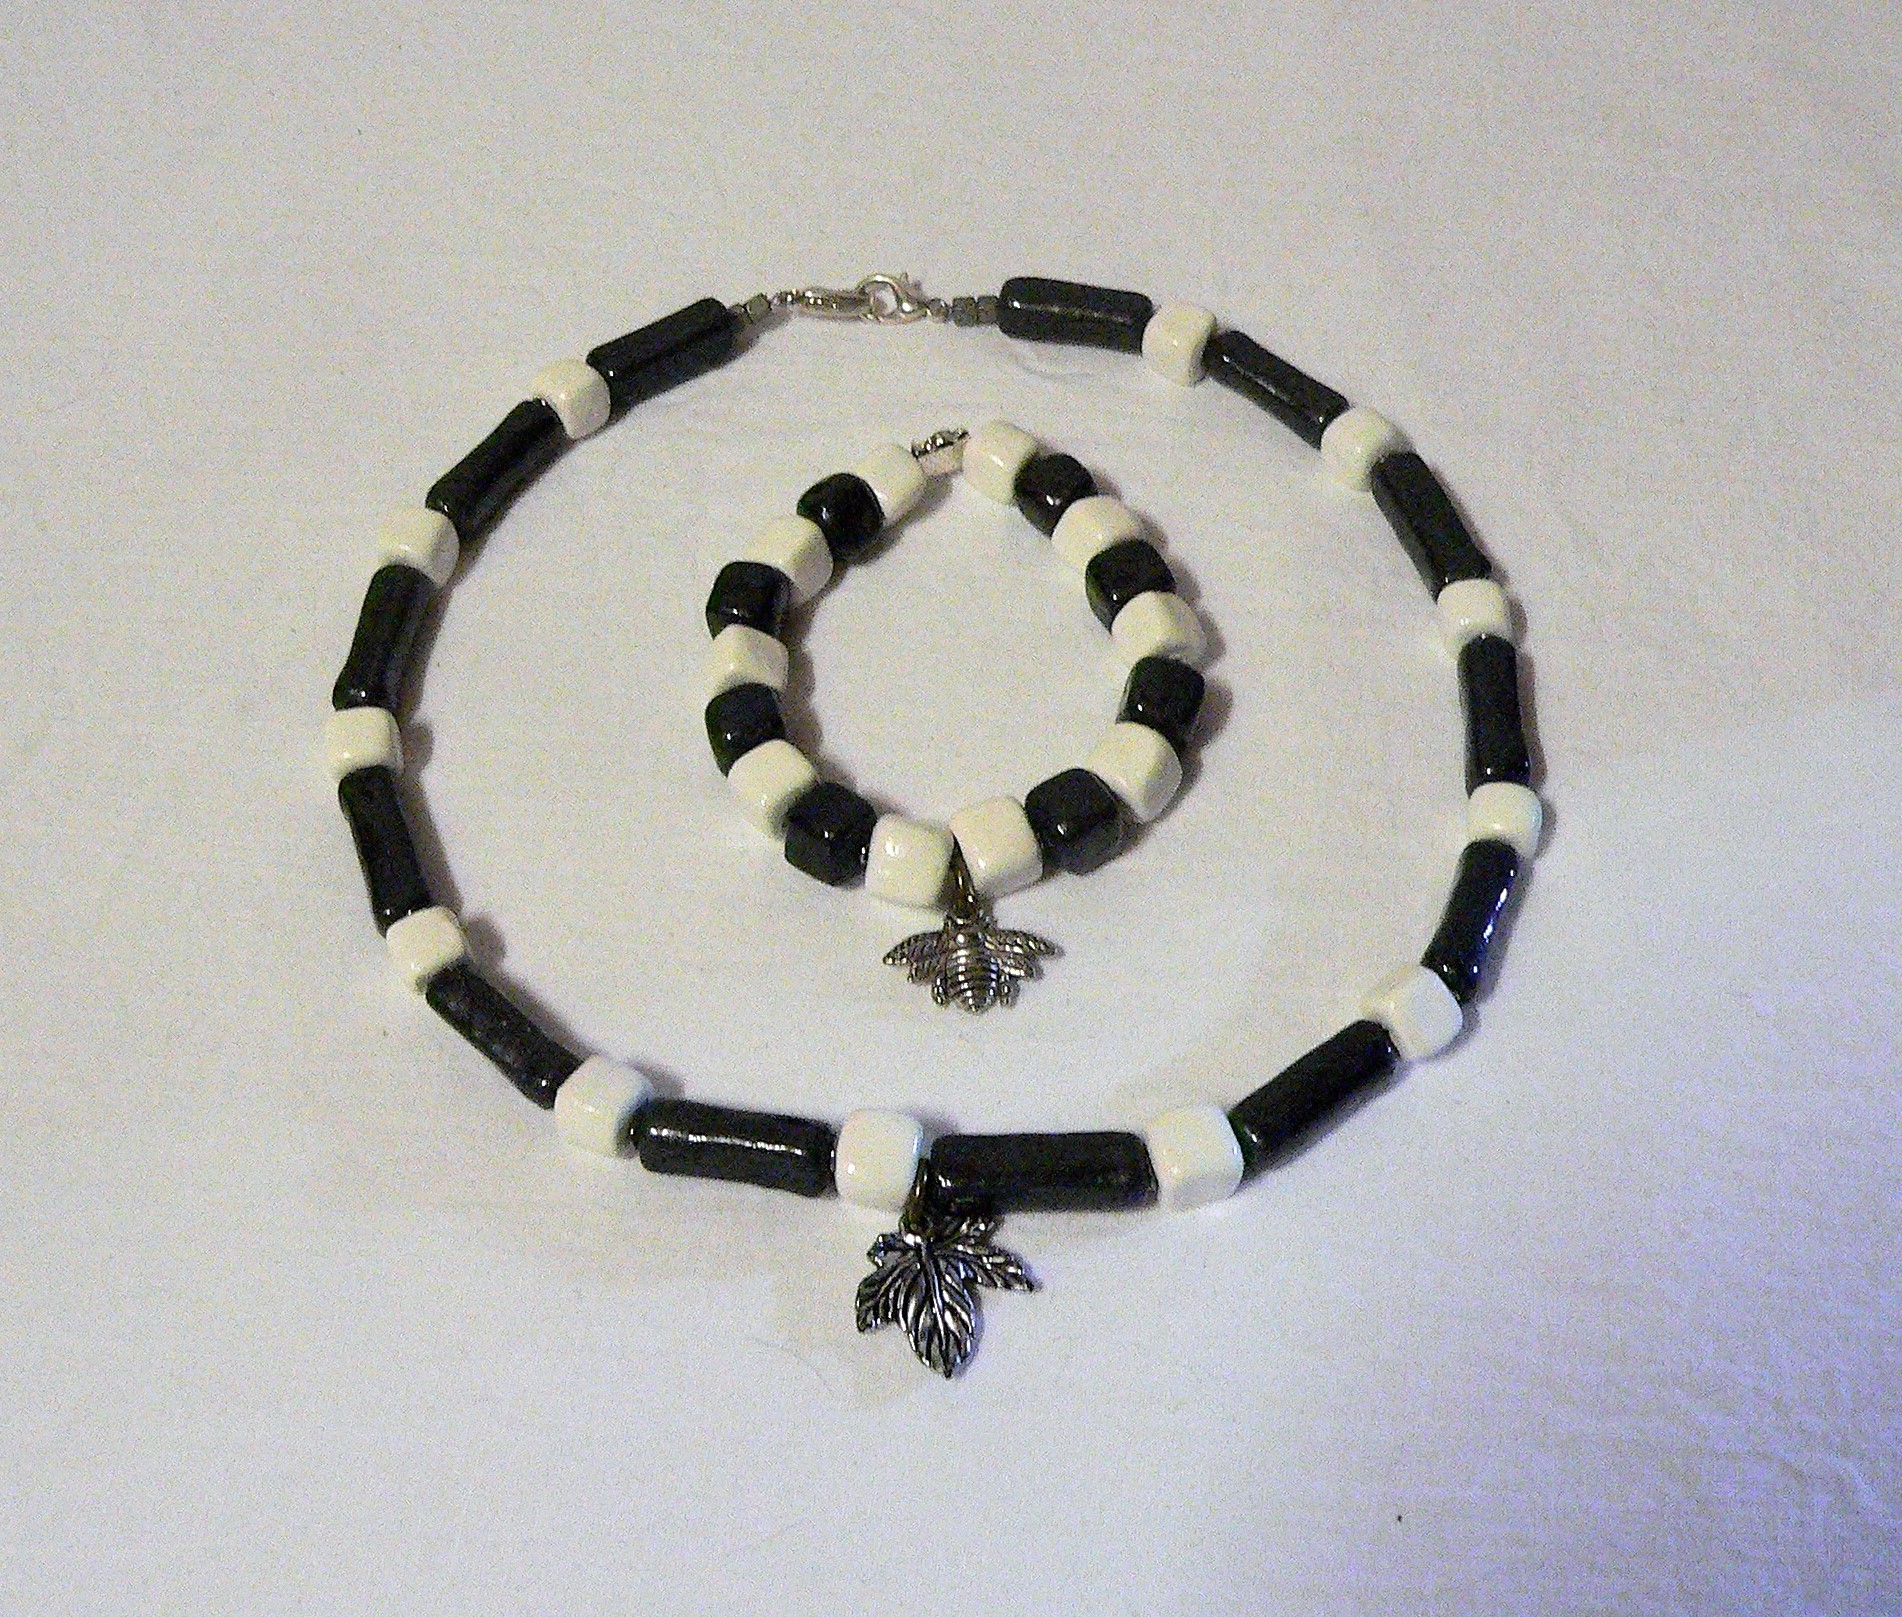 Ceramic choker and bracelet, white and black